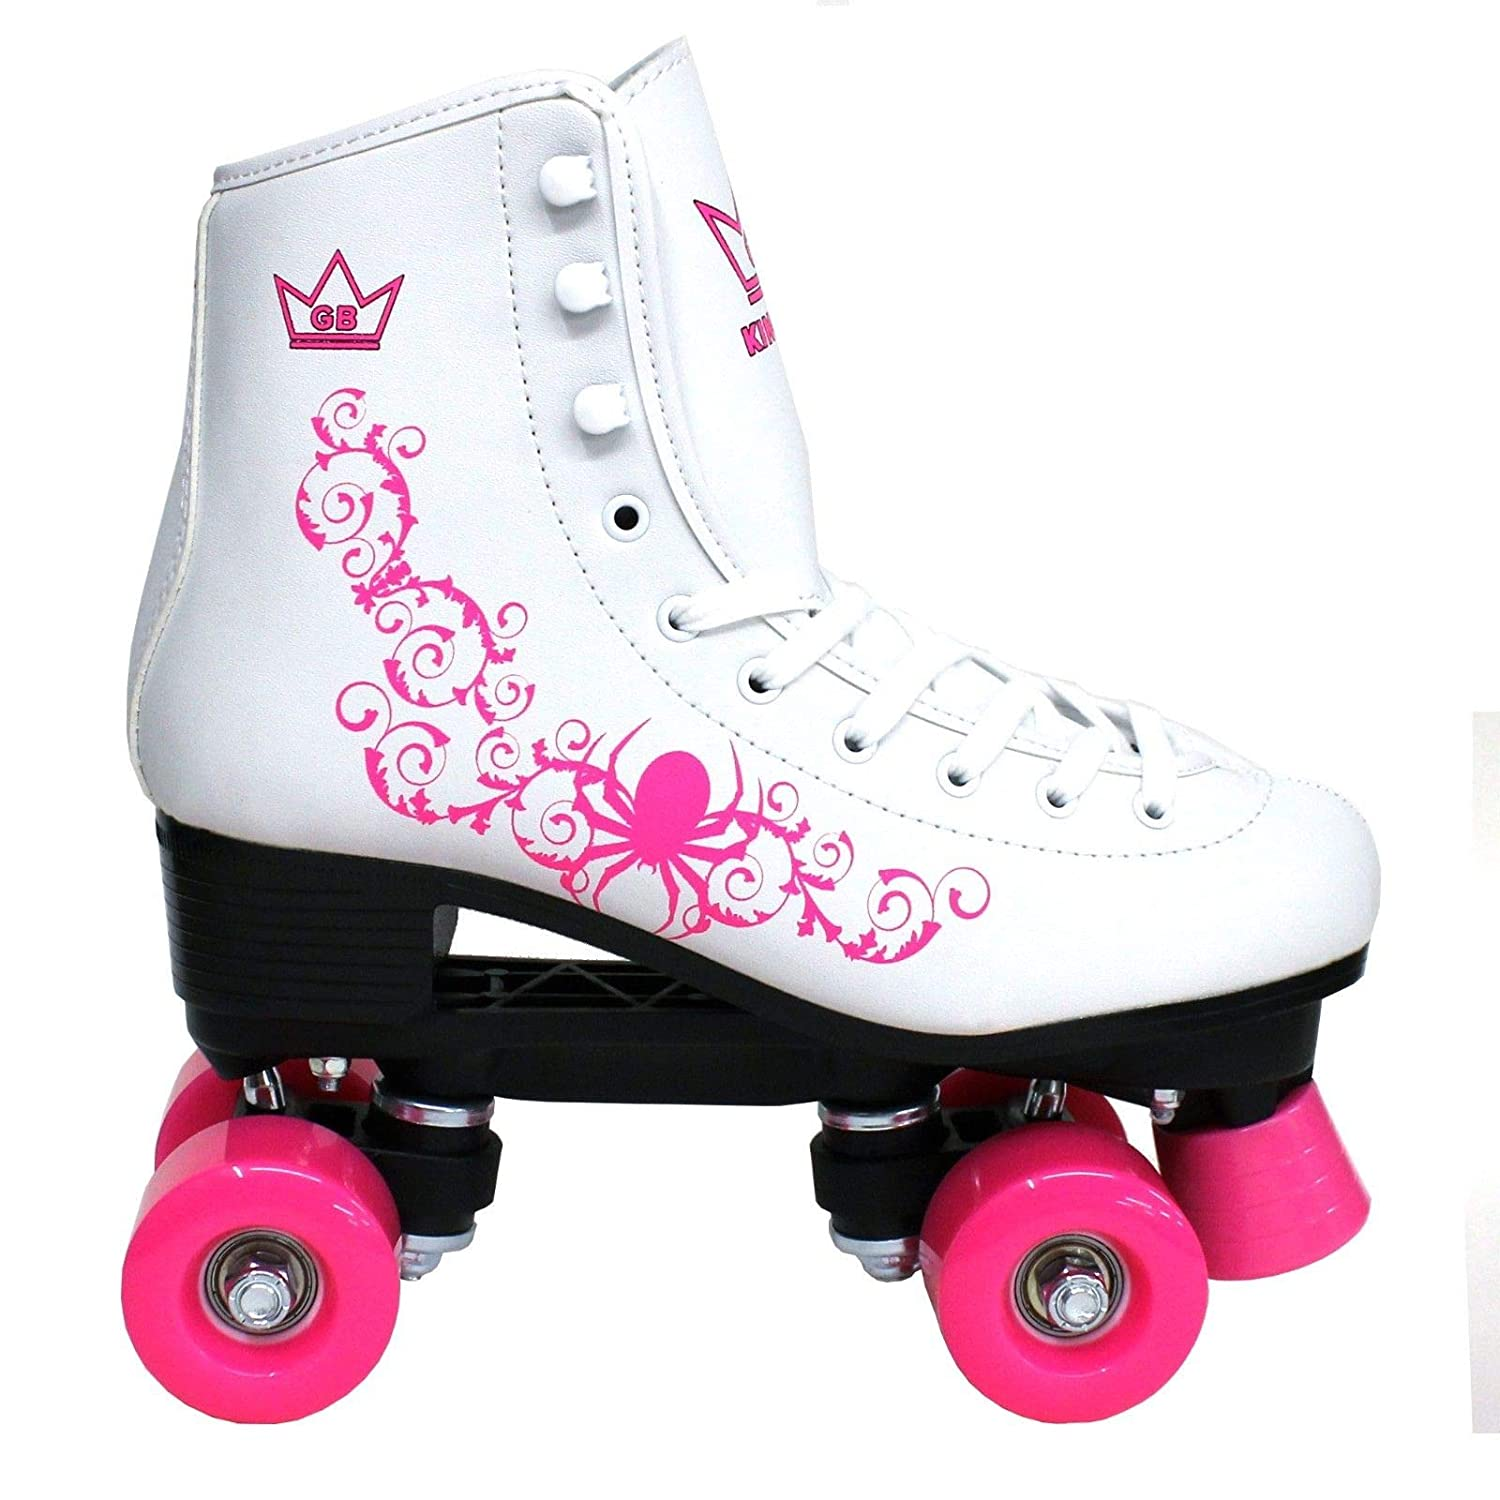 TALLA 36 EU. Kingdom GB Patines de Ruedas Vector Quad Wheels